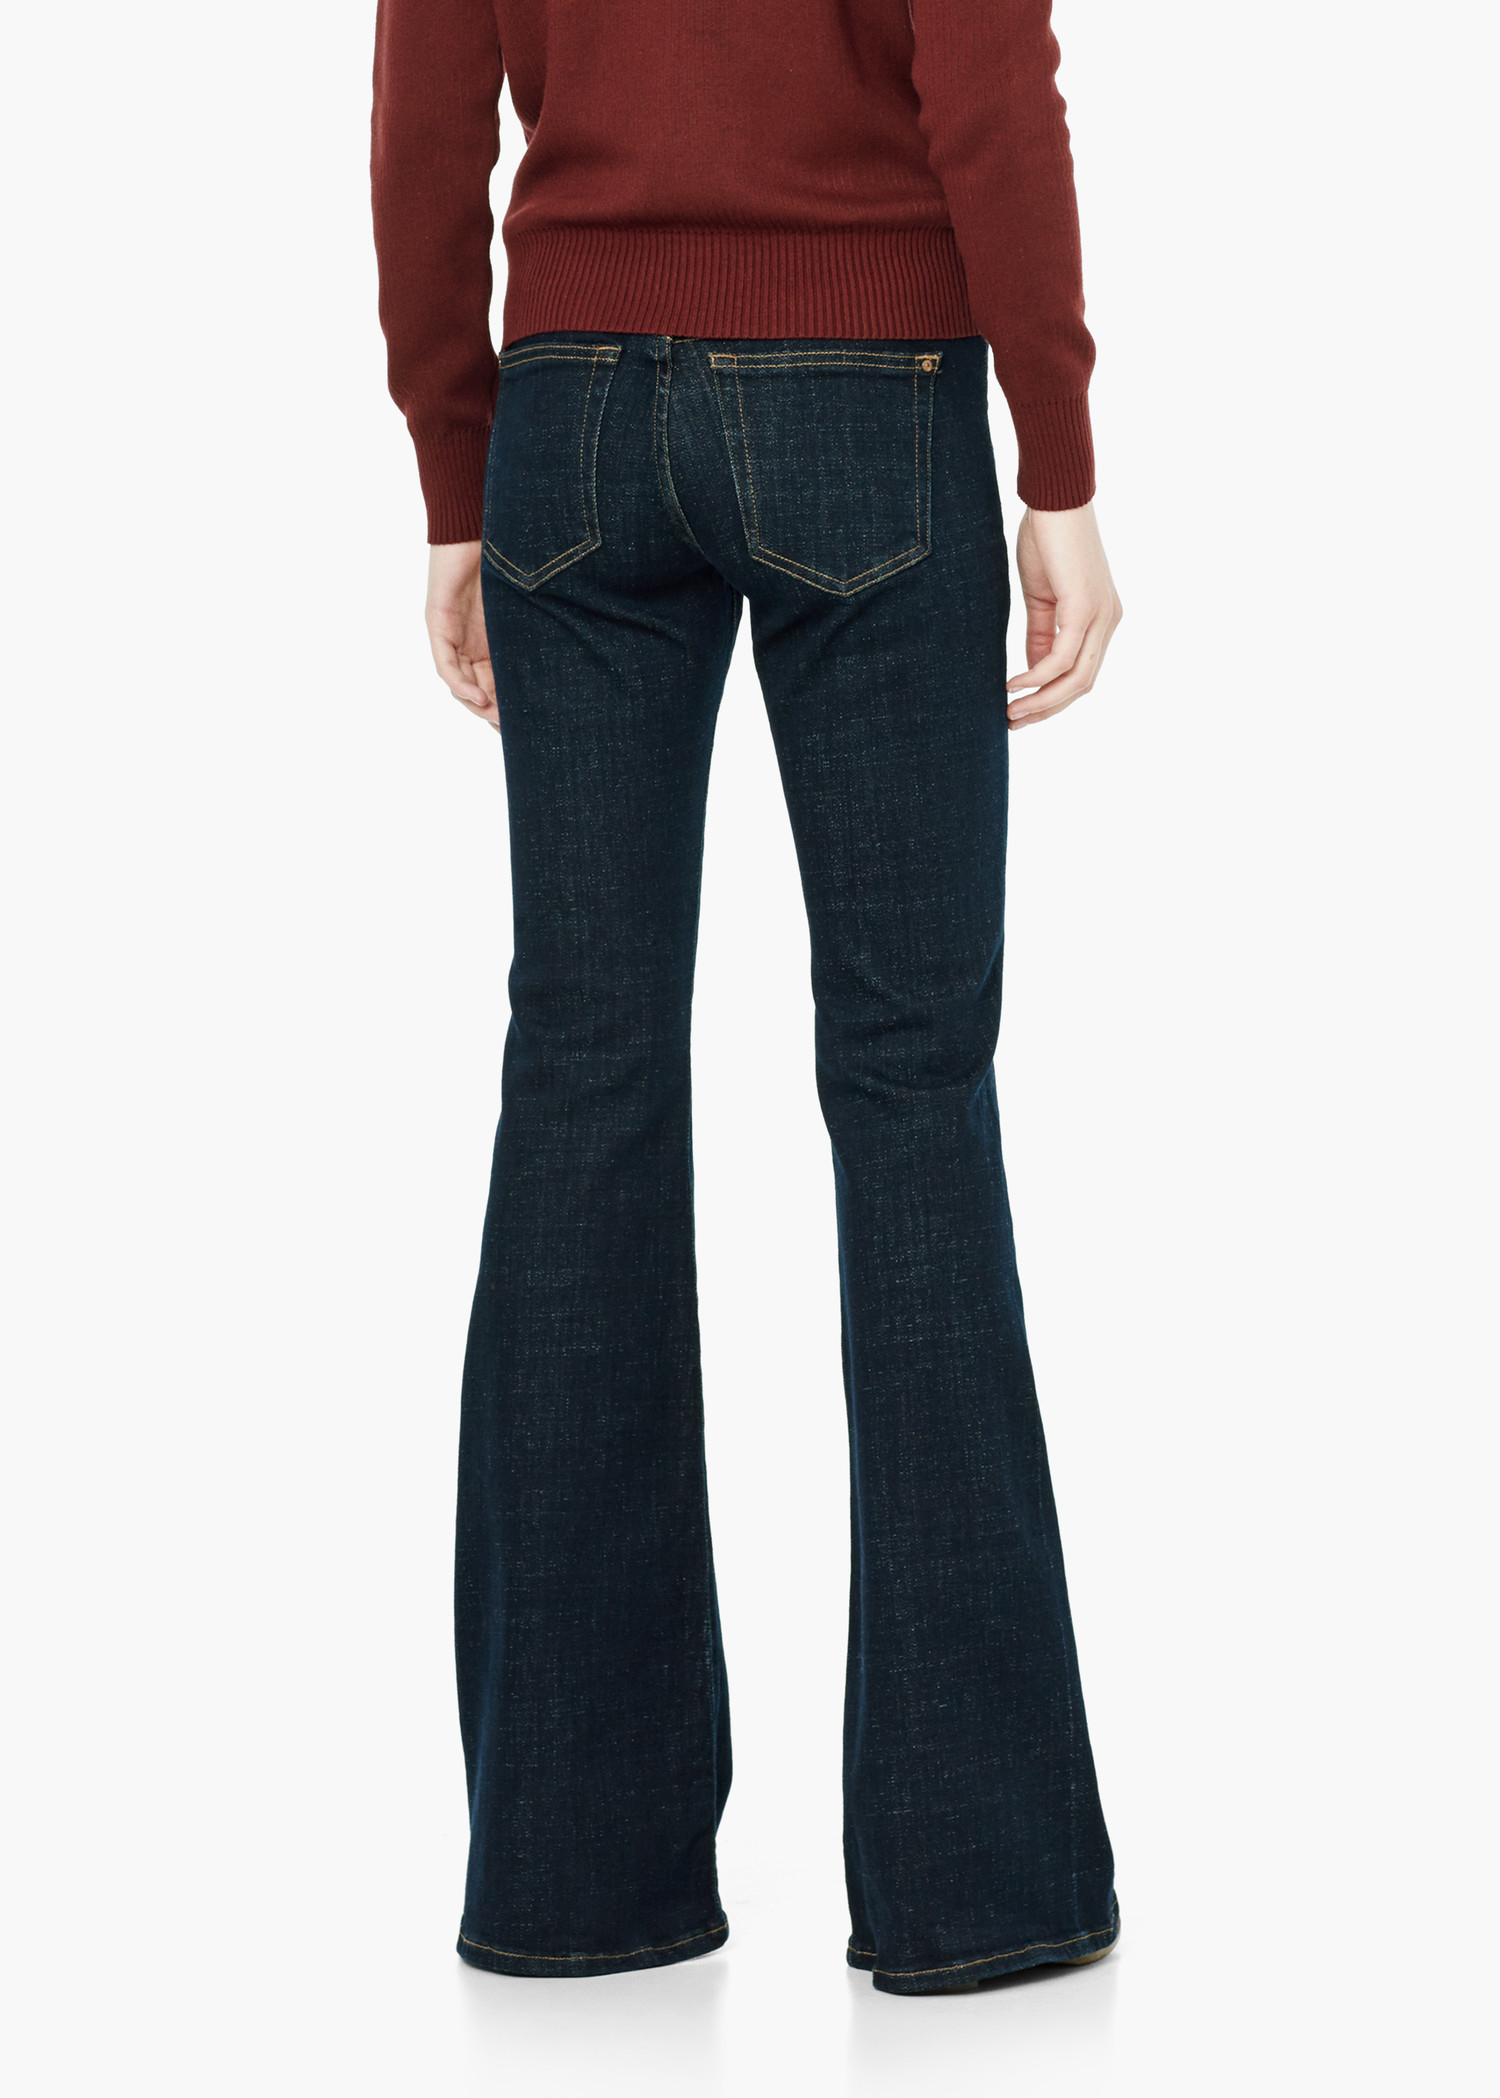 70s Style Ripped Bell-Bottom Wide Flared Jeans - Blue $ 59 out of 5 stars Ybenlow. Women Classic High Waist Flared Skinny Denim Jeans Bell Bottom Pants. from $ 23 88 Prime. out of 5 stars 9. Stetson. Womens Denim Trousers On Back Pocket. from $ 63 27 Prime. out of 5 stars Ermonn.